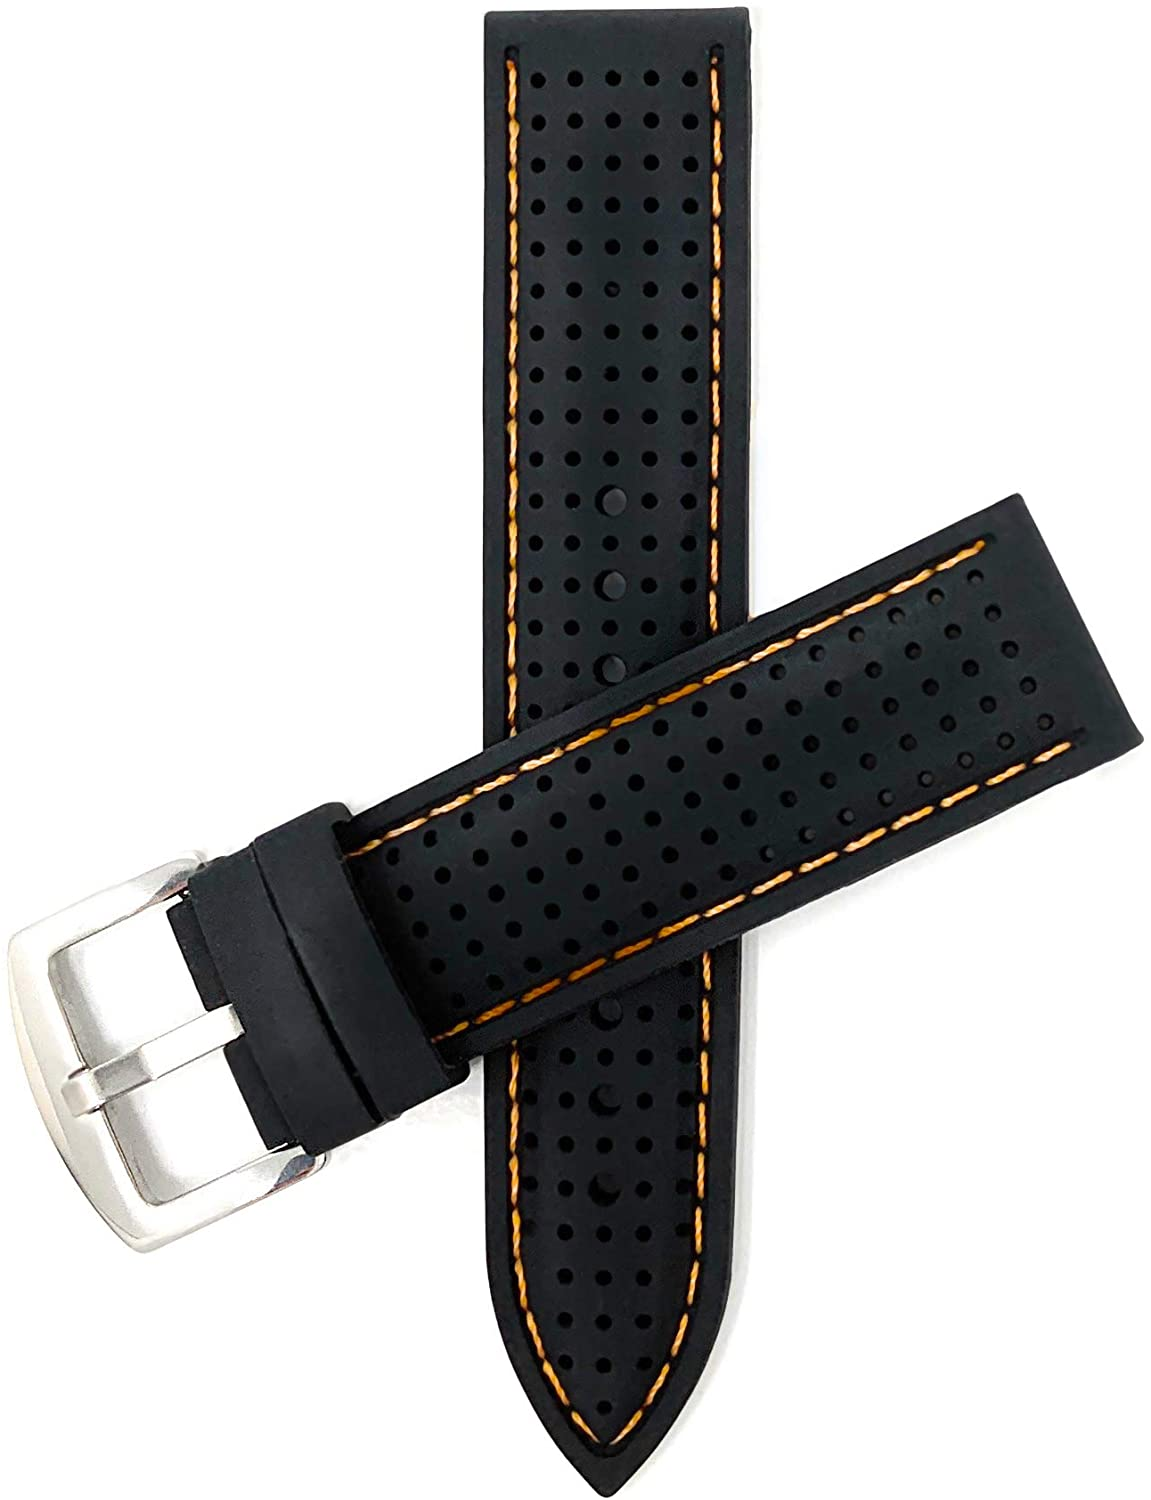 Bandini 22mm Silicone Watch Bands - Soft Rubber Replacement Watch Straps - Perforated GT Rally Vented - Waterproof - Black or Stainless Steel Buckle - Many Colors